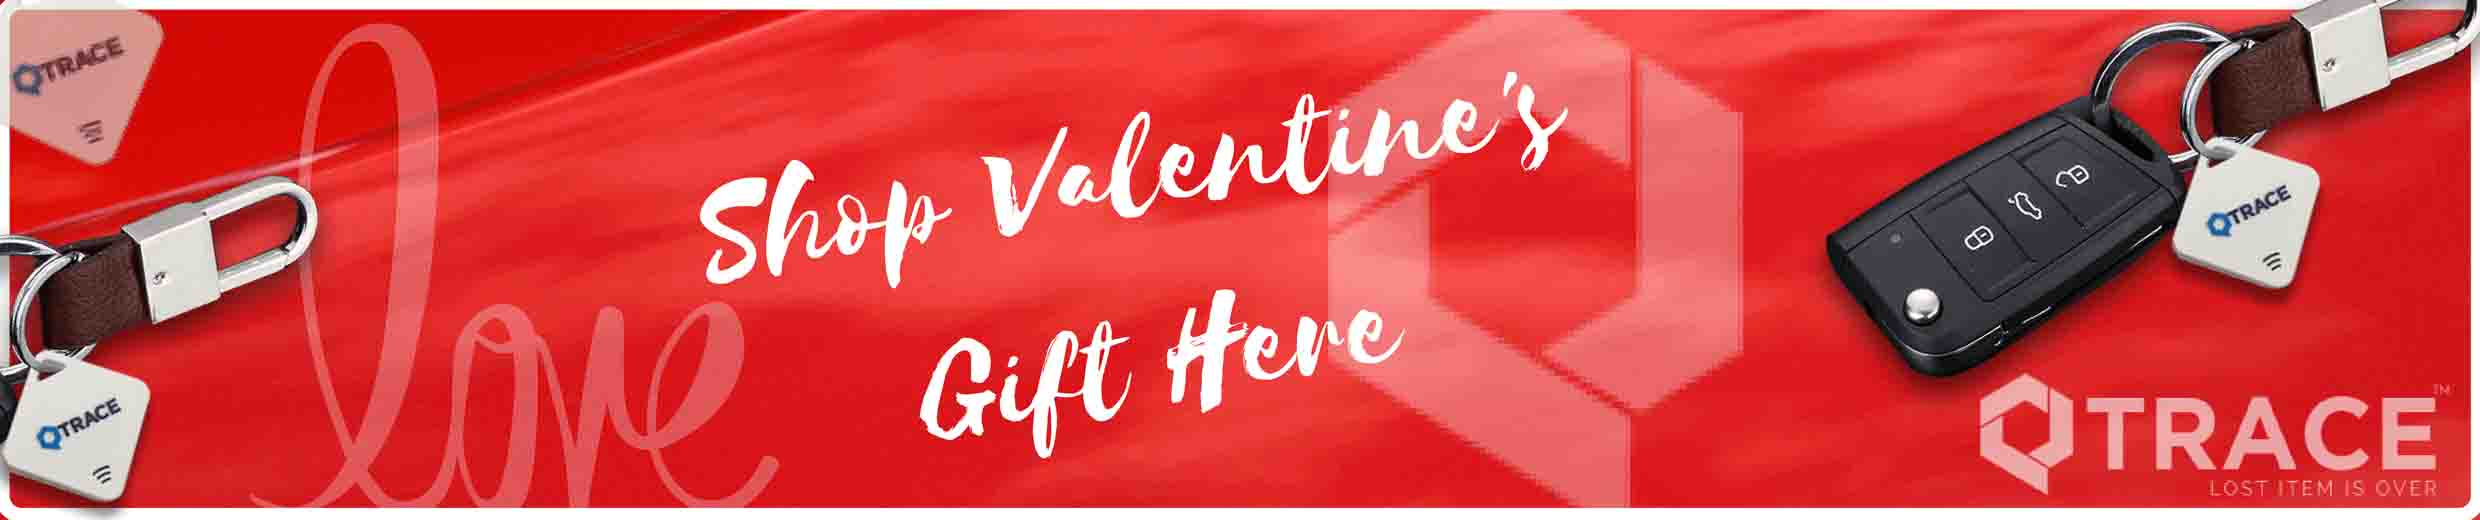 Shop Valentine's Day Gift